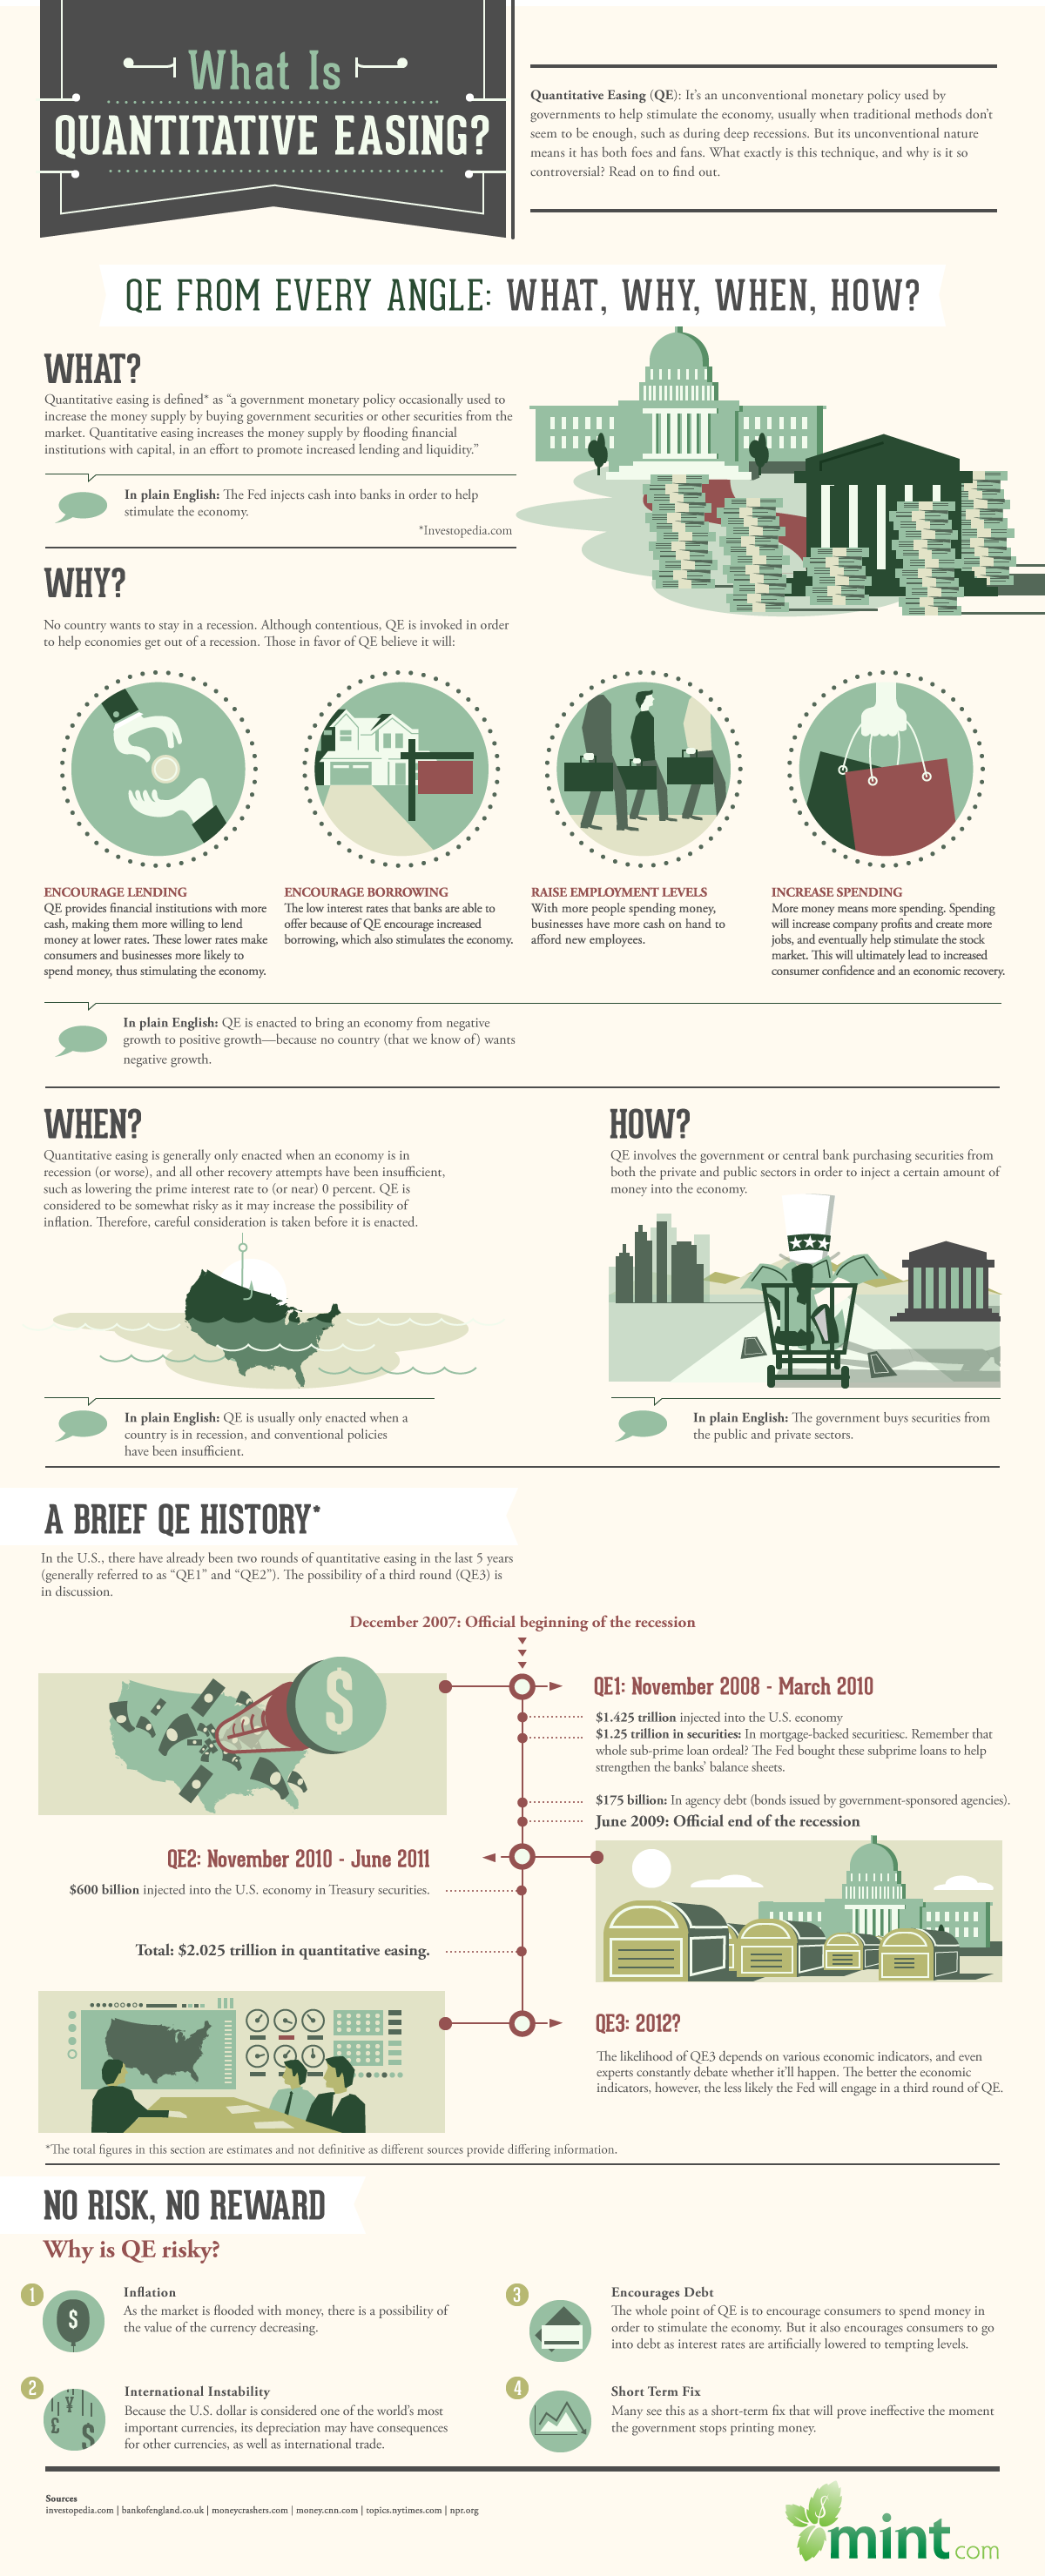 What is Quantitative Easing? #infographic